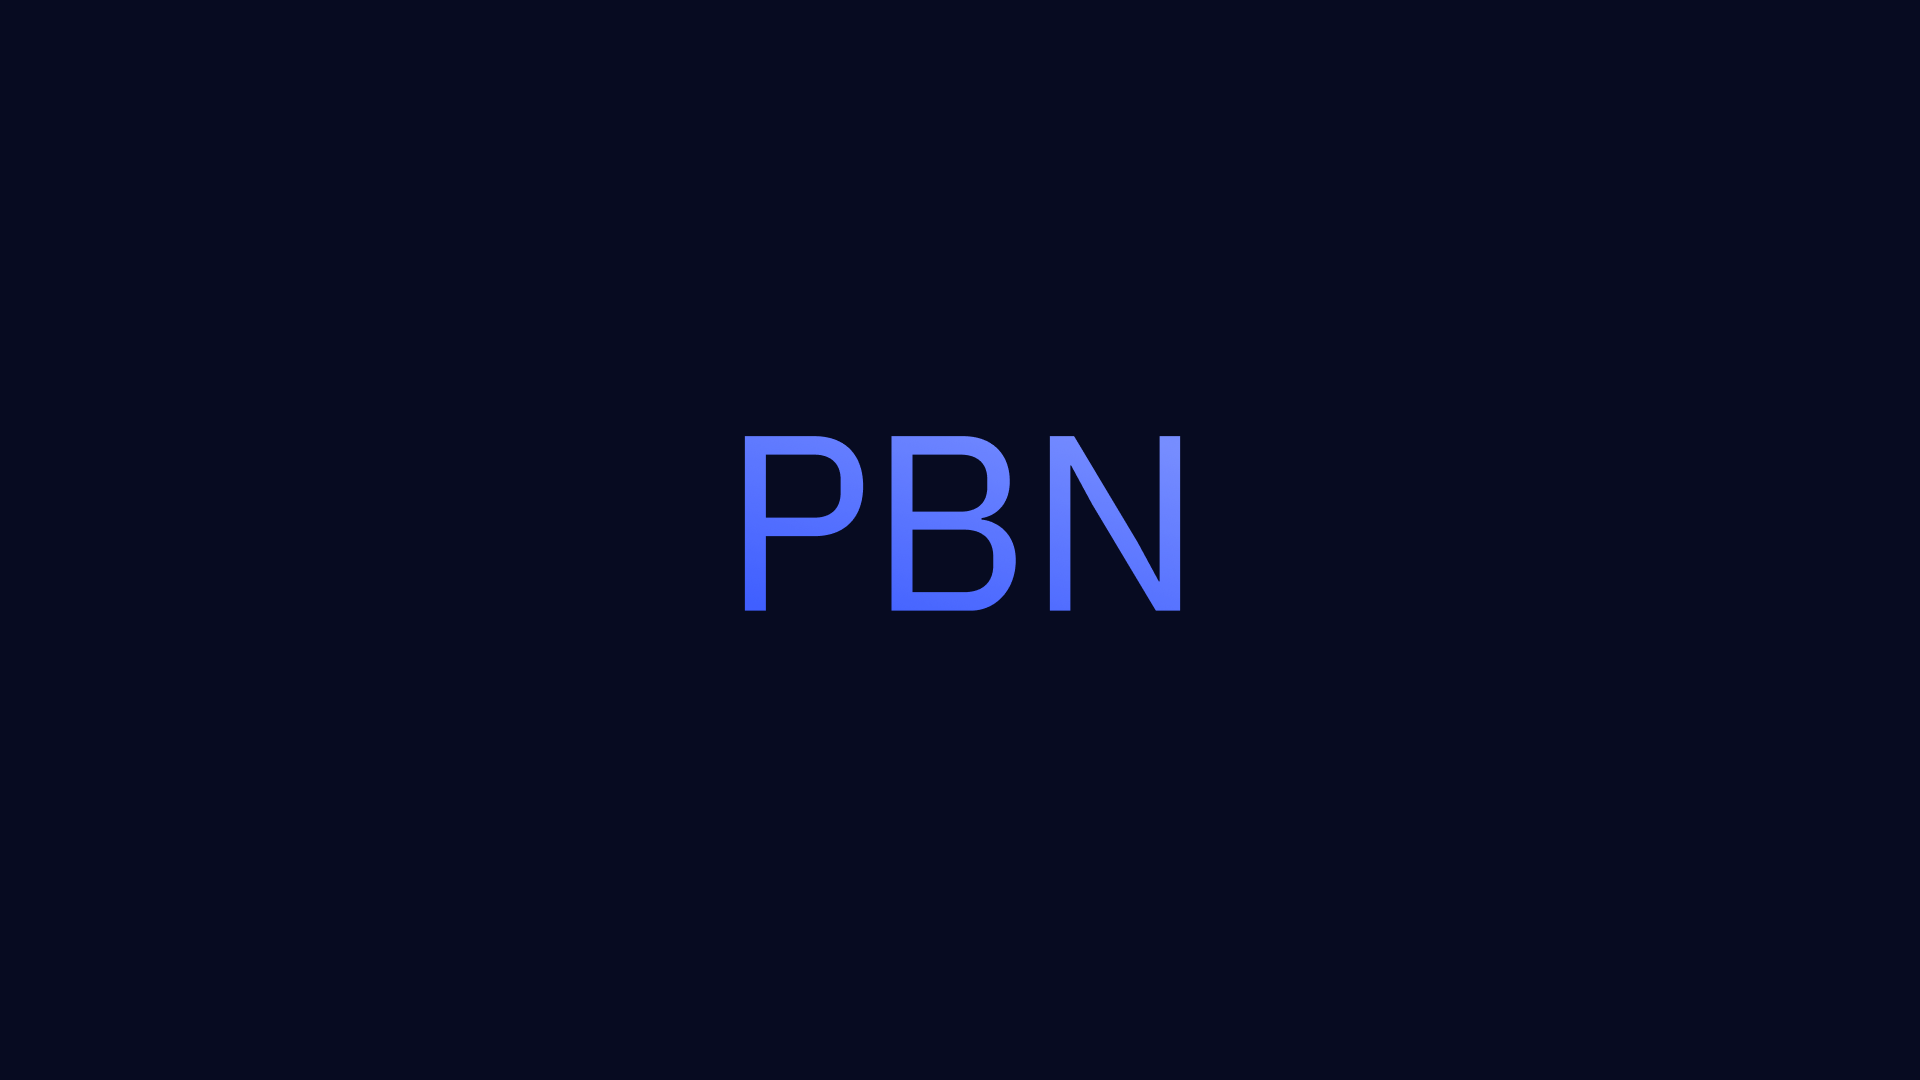 PBN Performance Based Navigation